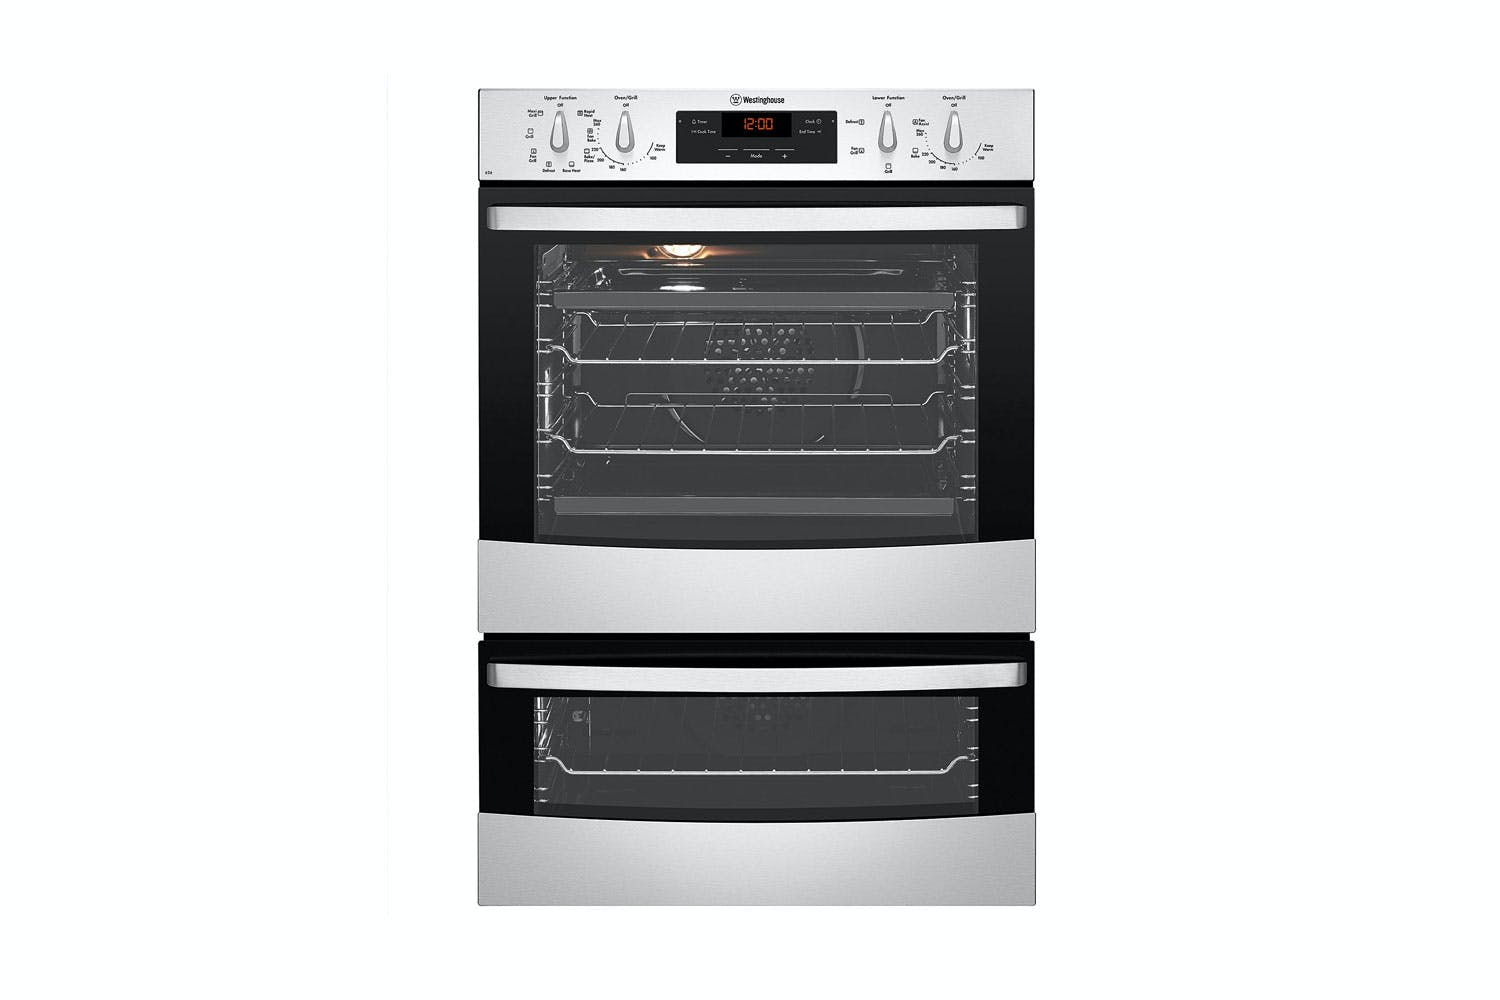 Westinghouse 60cm multifunction duo oven harvey norman new zealand - Westinghouse and living ...